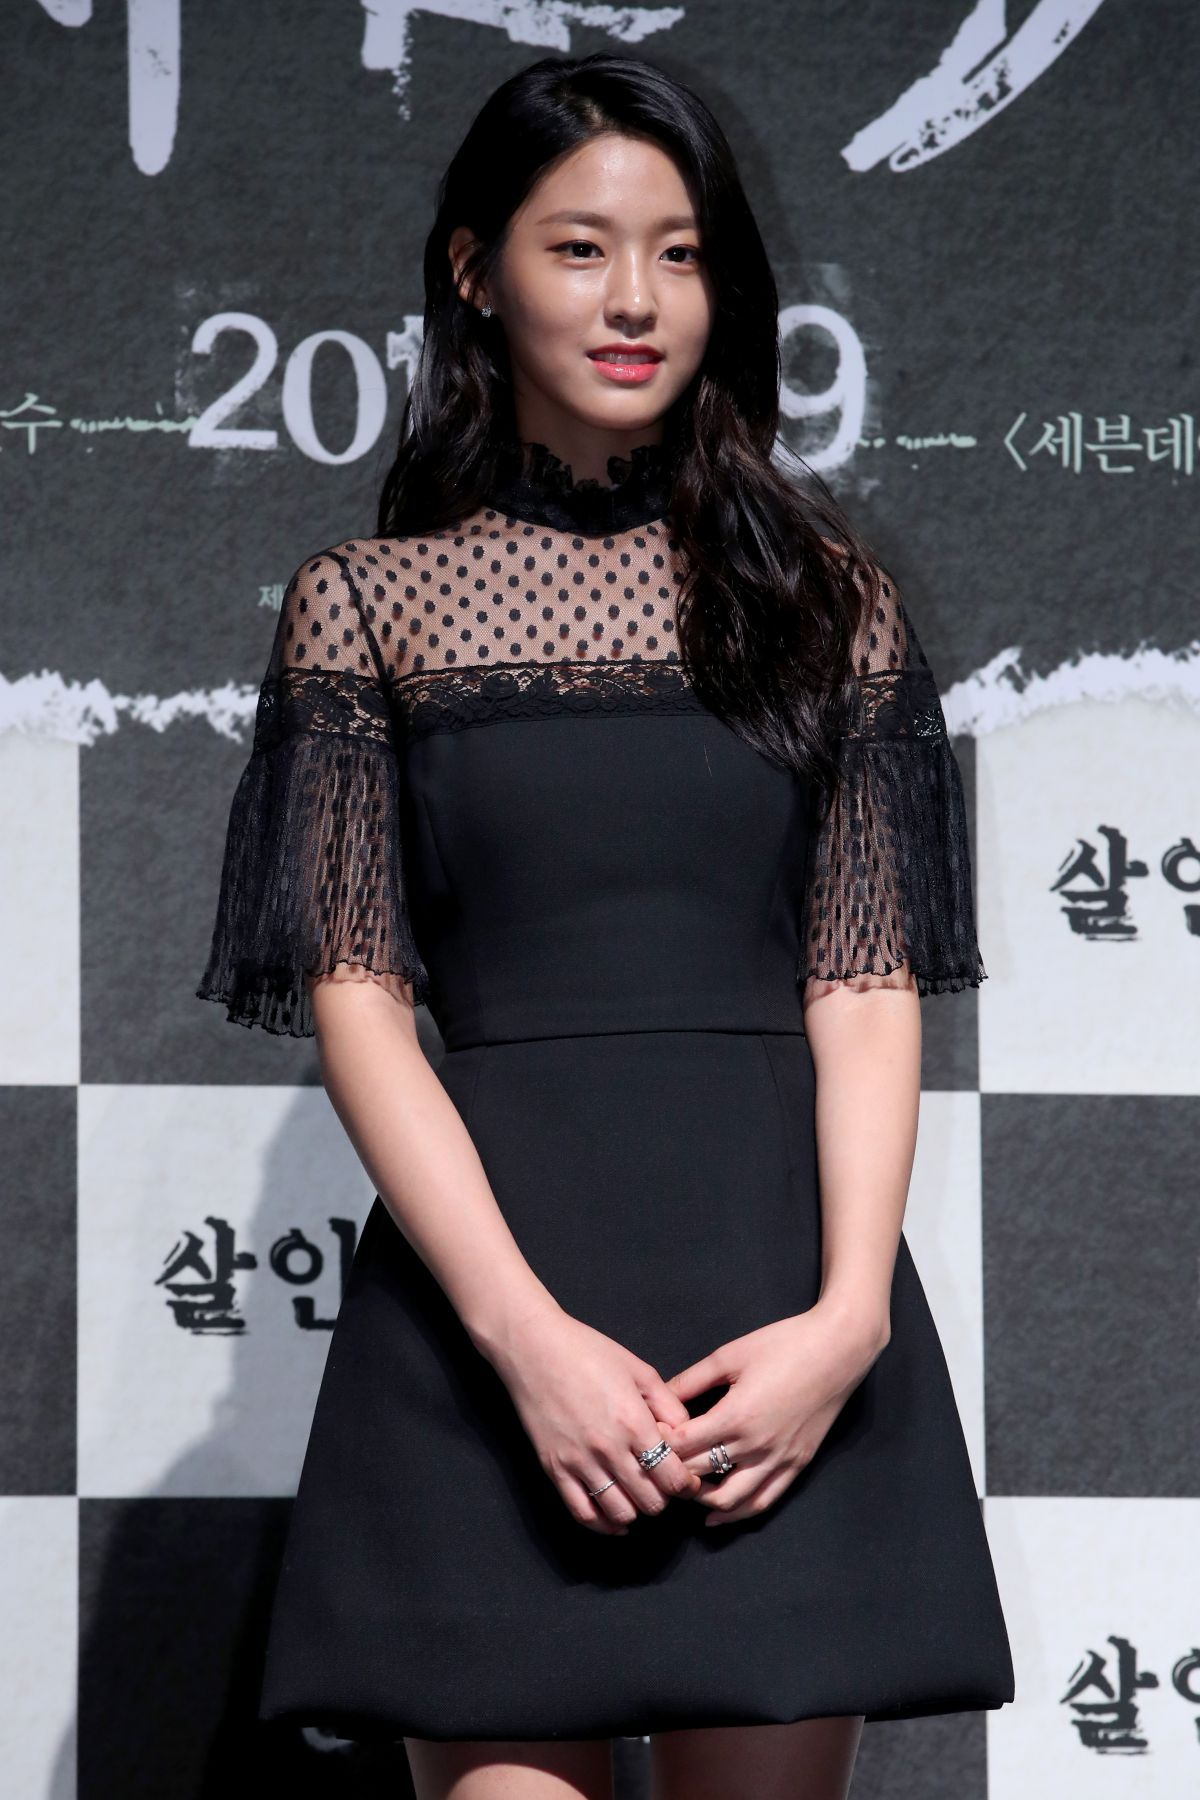 SEOL HYUN at Memoir of Murderer Premiere in Seoul 08/08/2017